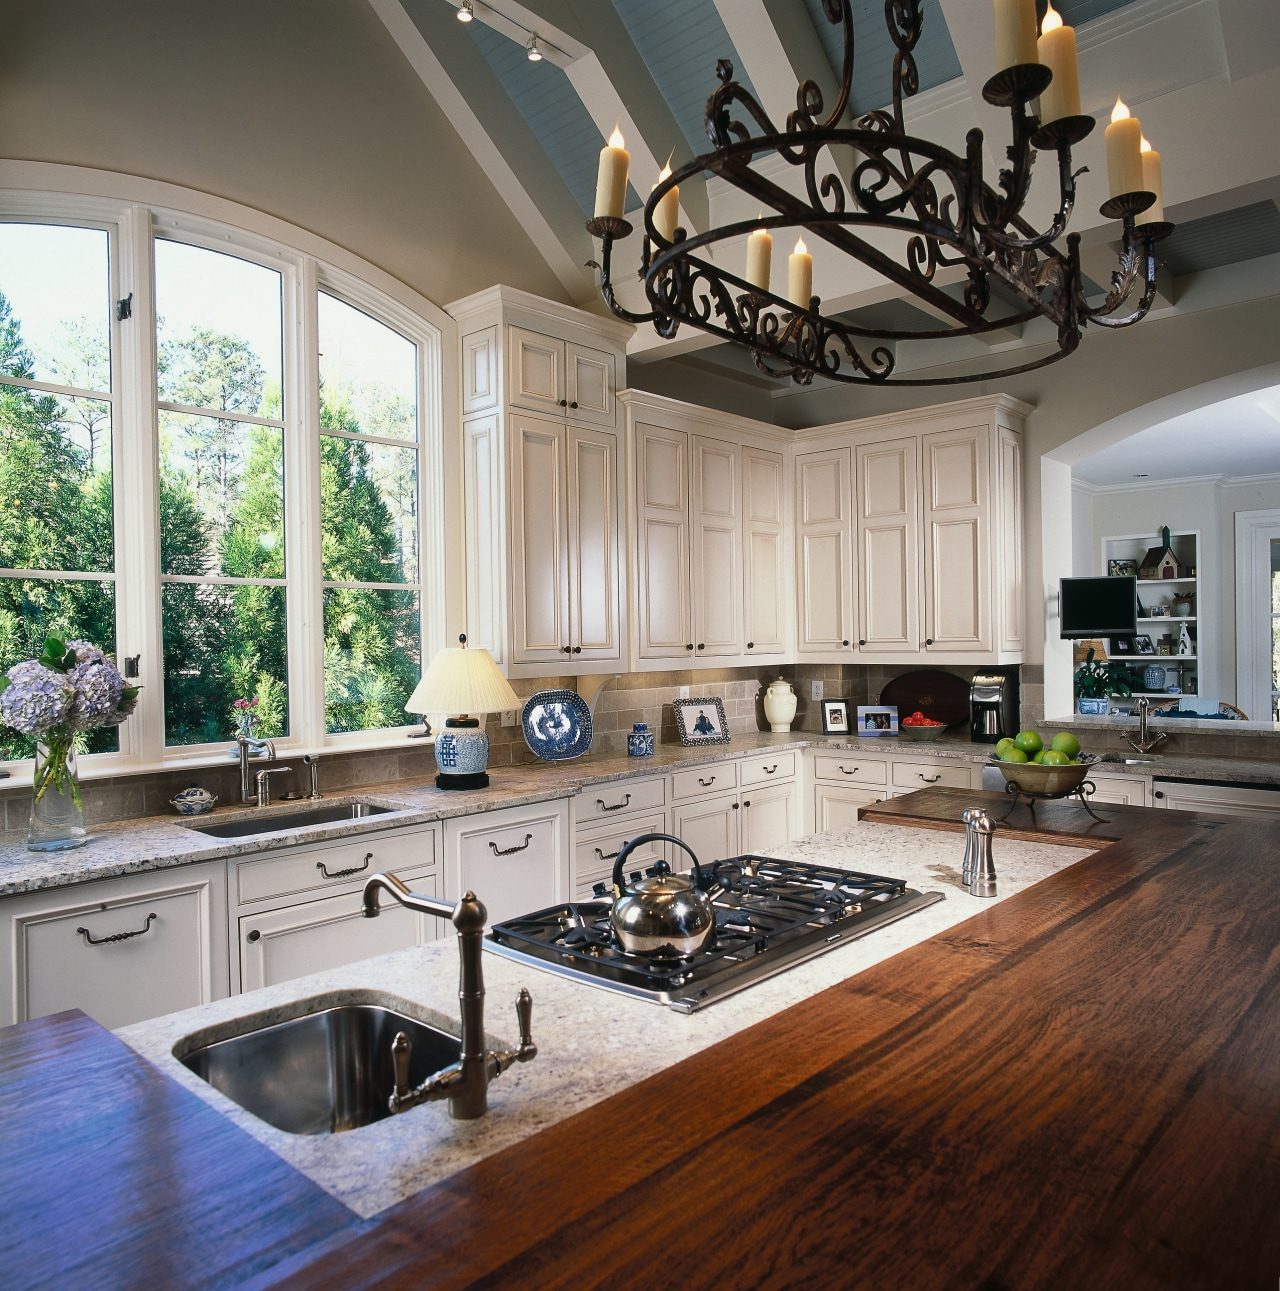 A view of the kitchen area, wooden cabinetry, countertop, home, interior design, kitchen, room, gray